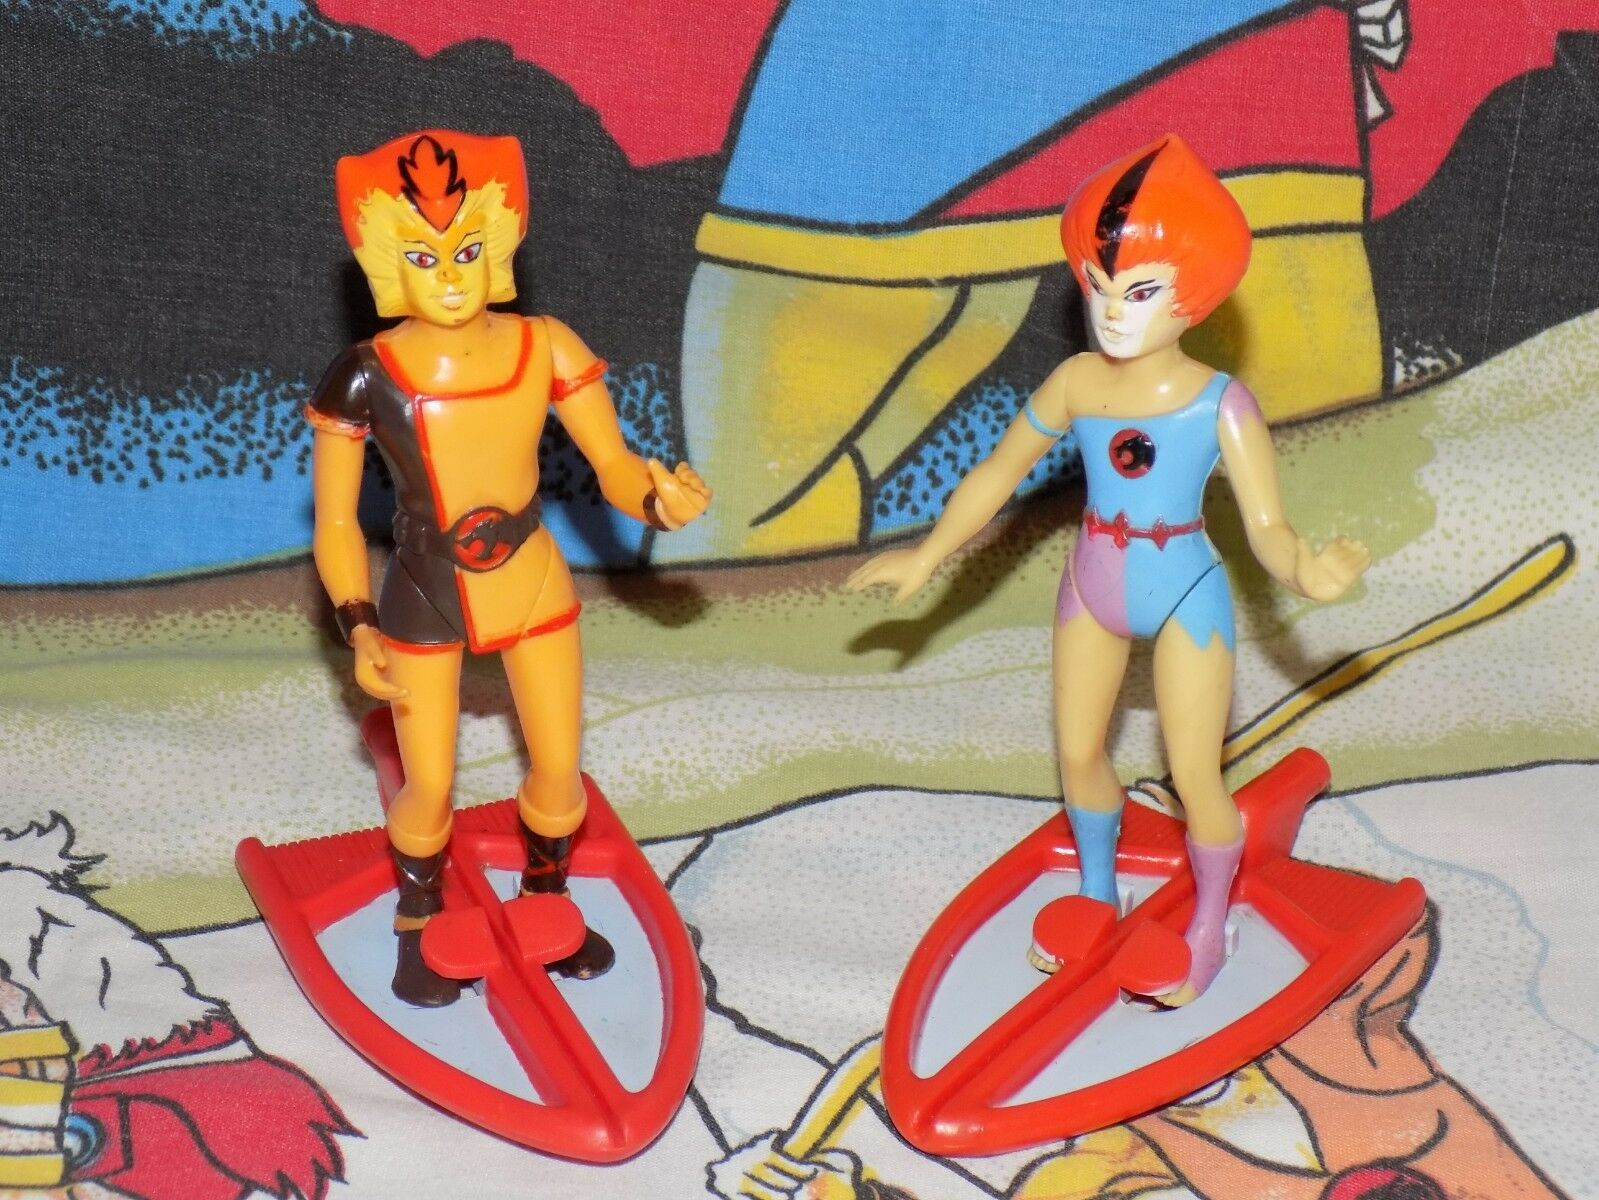 Thundercats loose completo astuto KIT KAT Wiley schede THUNDER Kittens LJN Figura